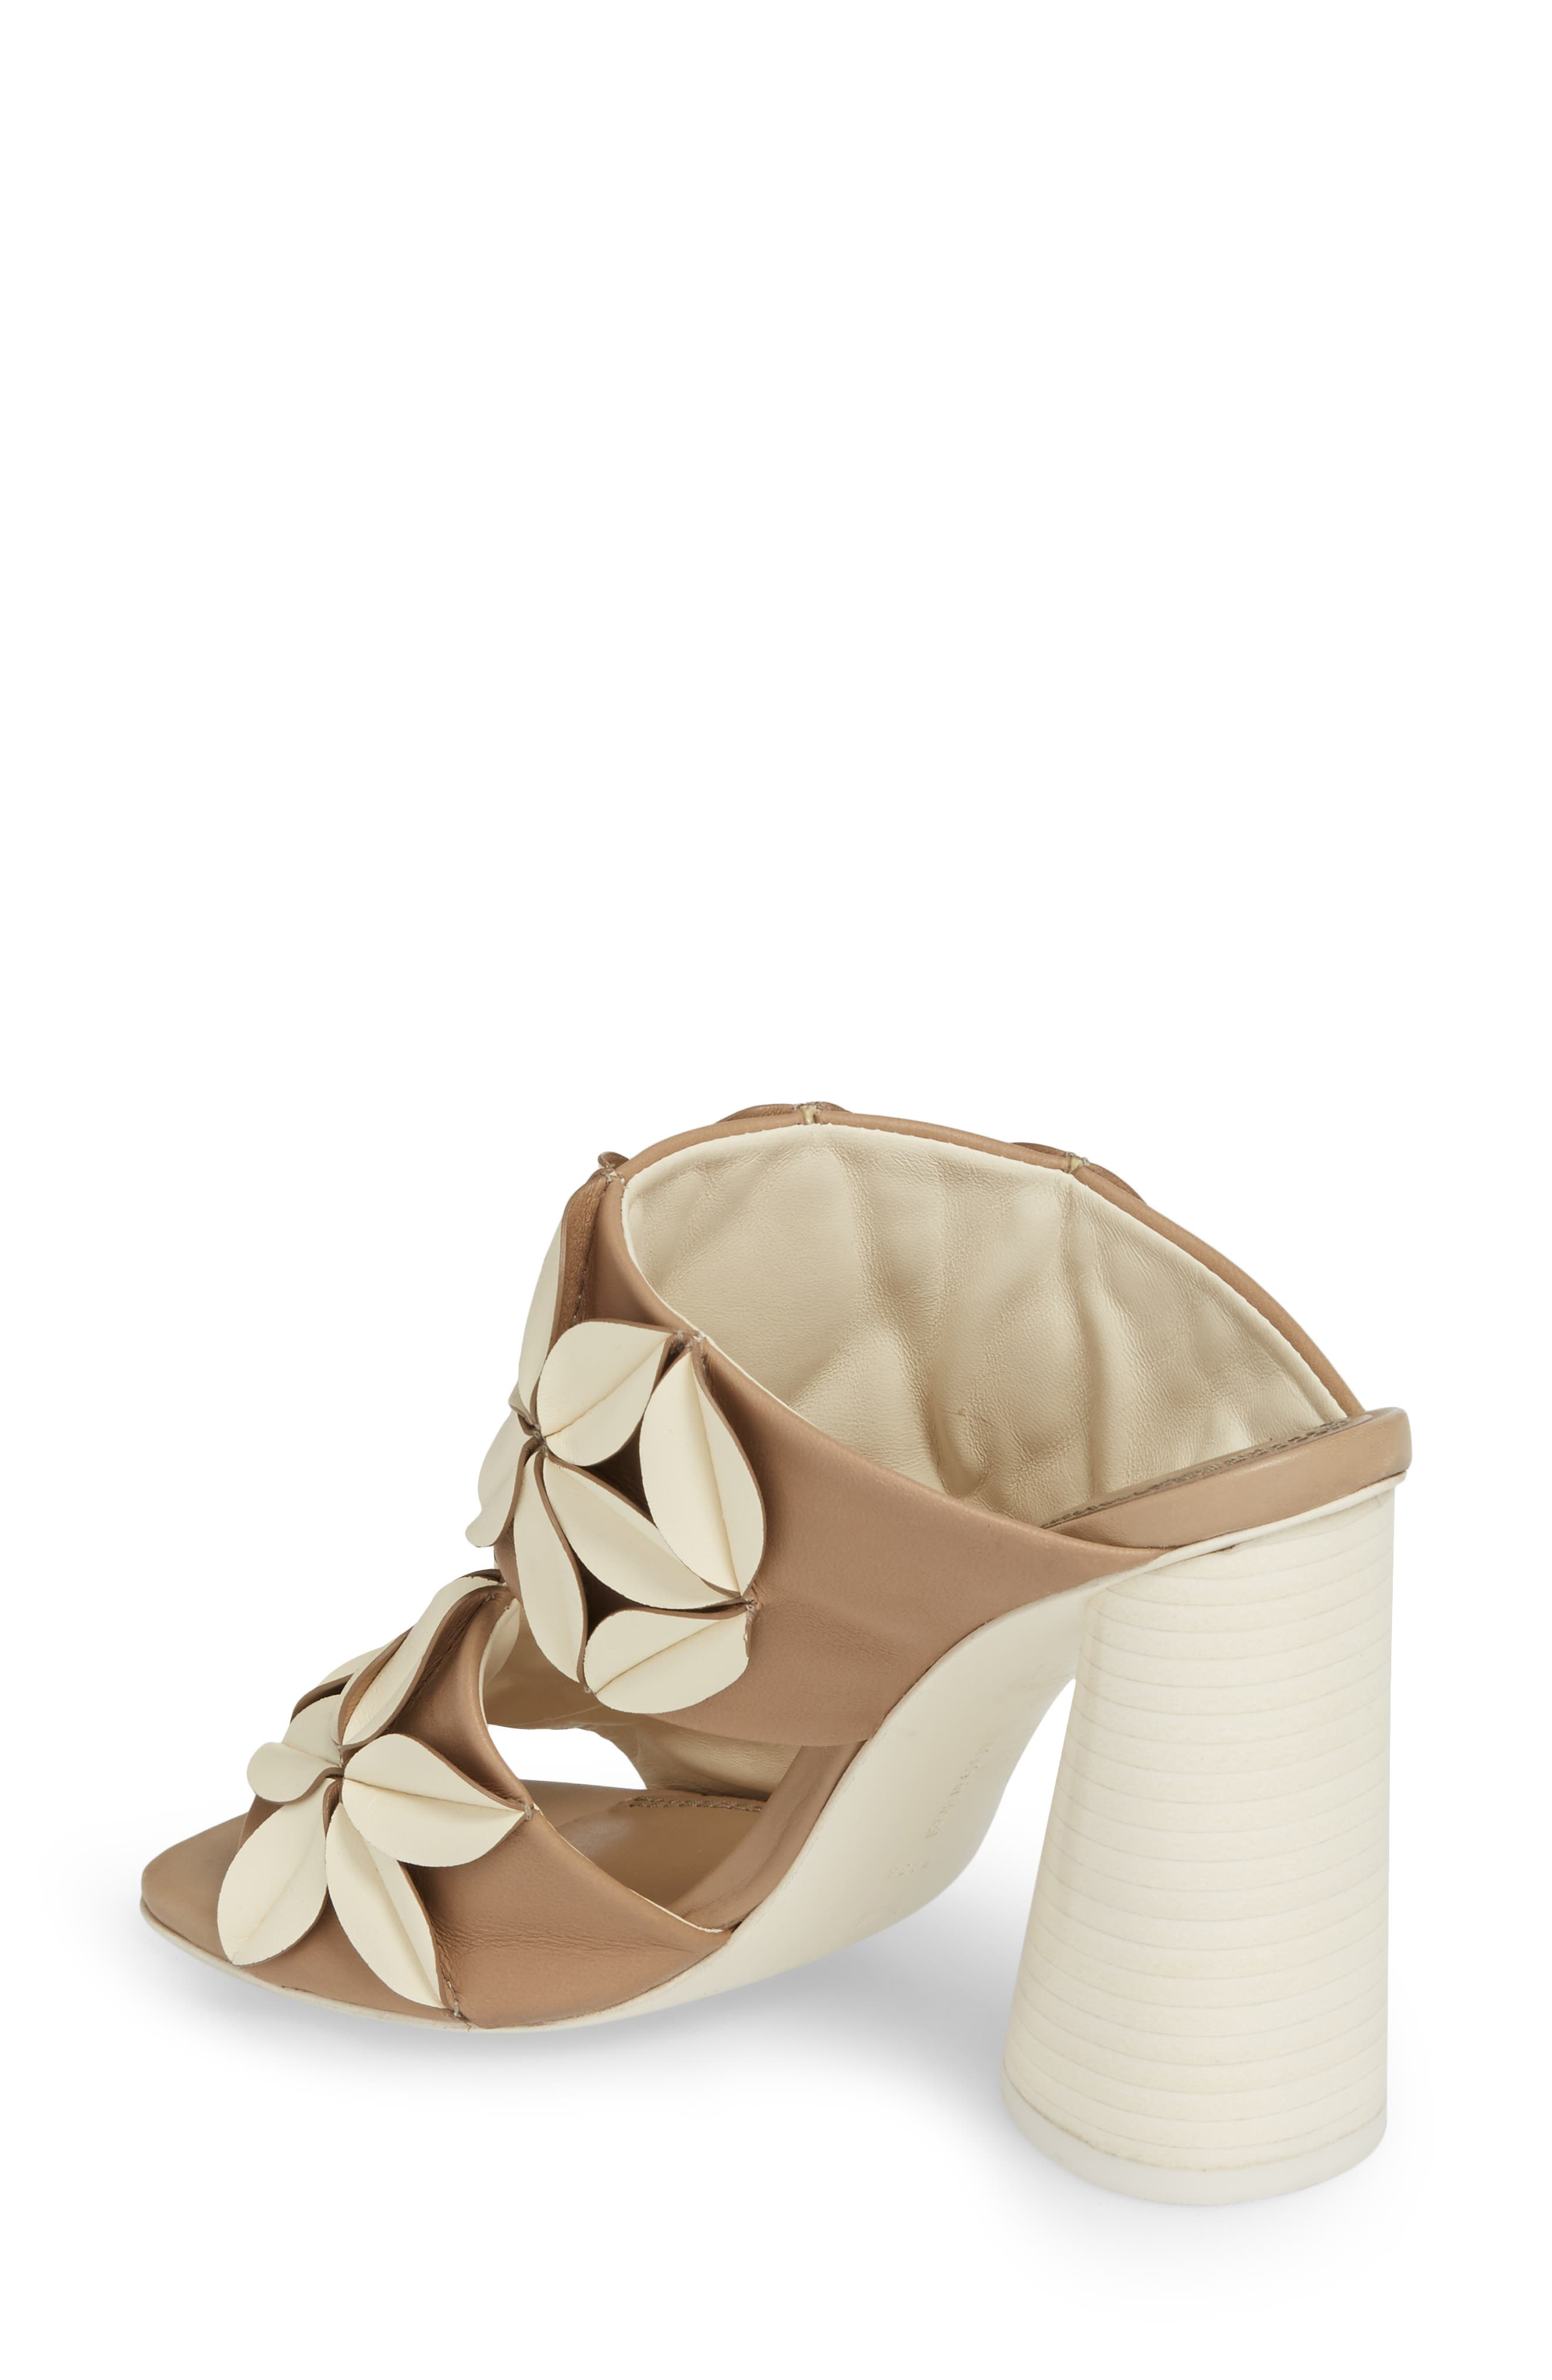 Mura Floral Embellished Mule,                             Alternate thumbnail 2, color,                             Ivory/ Taupe